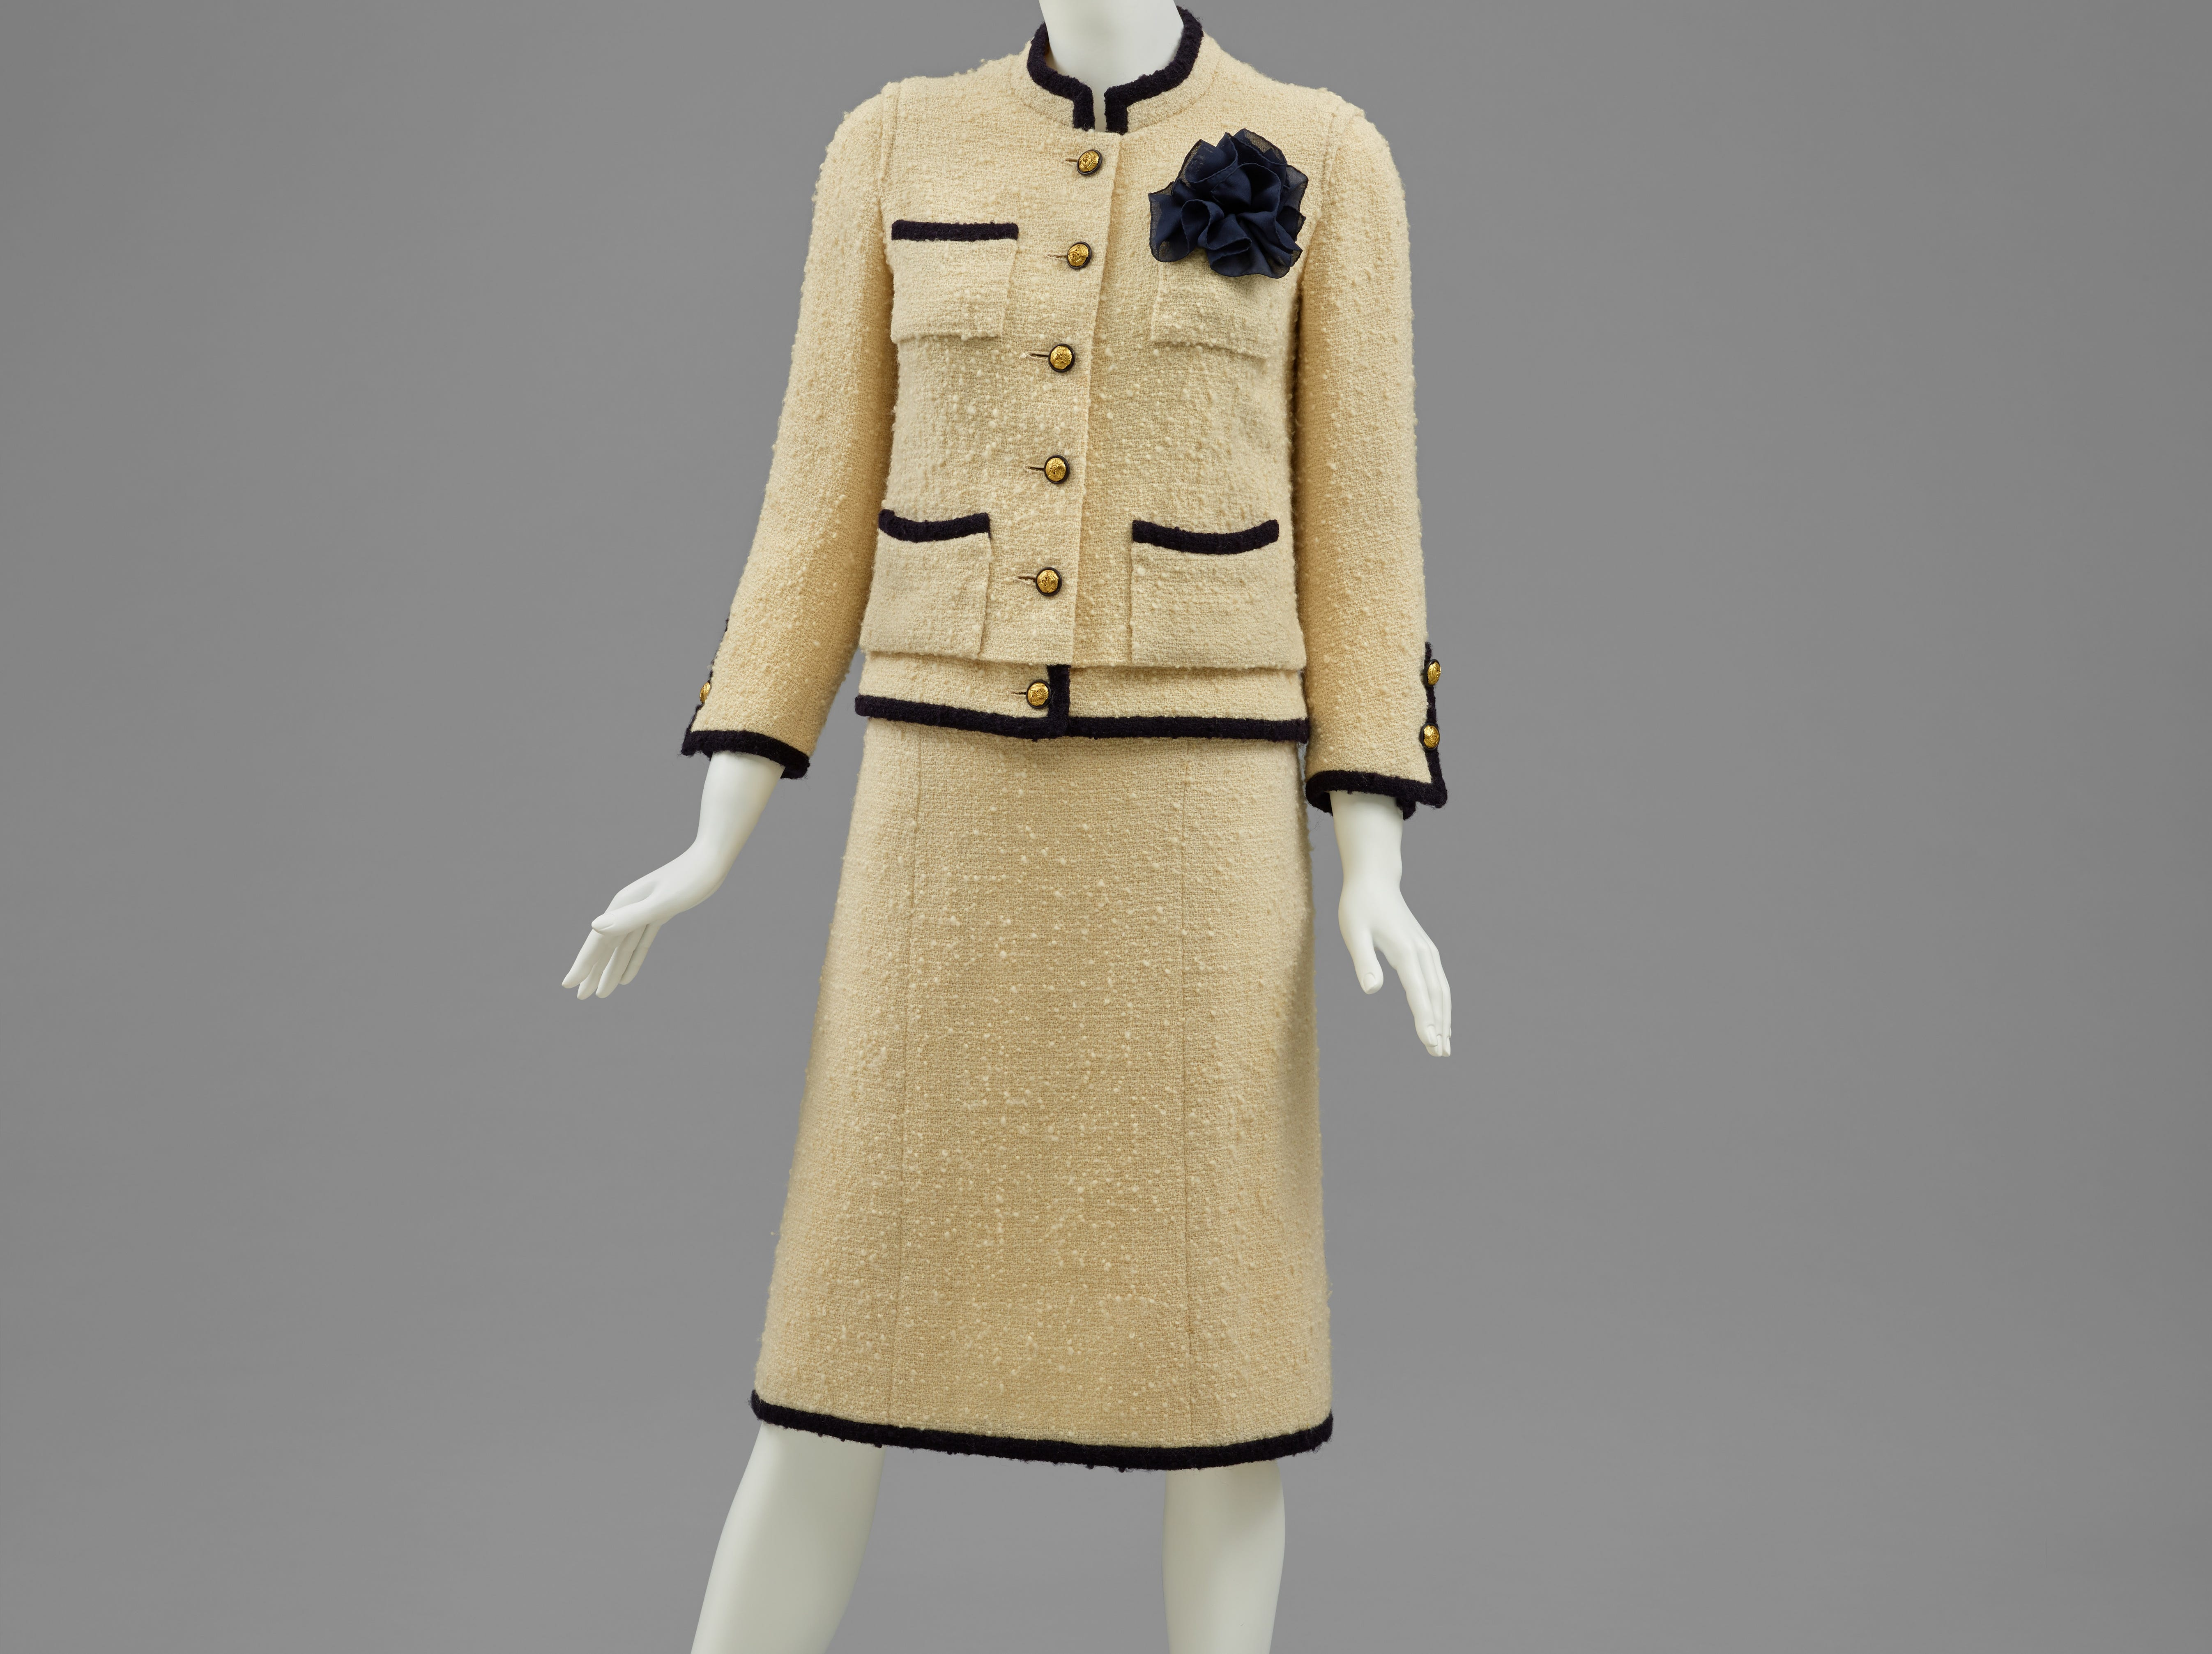 'Label Chanel, Paris  Woman's Suit: Jacket, Skirt, and Kerchief' was designed in Fall/Winter 1972-1973. The ensemble is an ivory and black wool and navy blue silk.